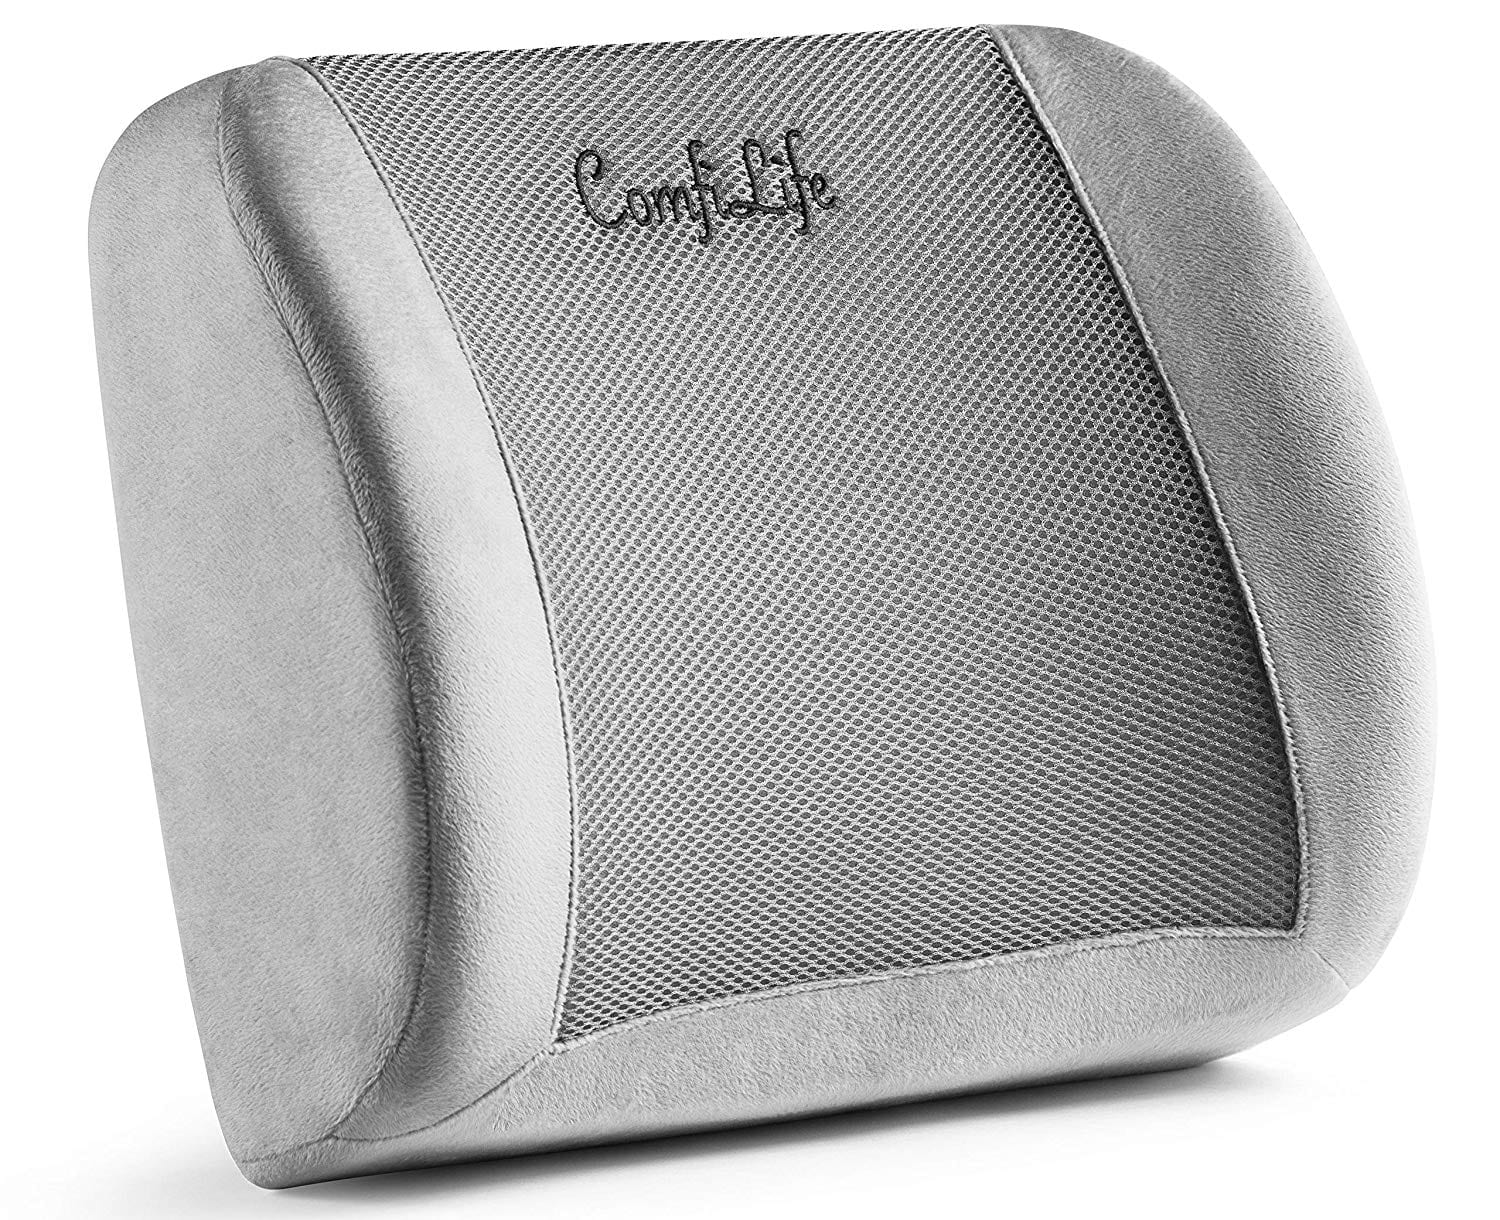 ComfiLife Lumbar Pillow Review by www.snoremagazine.com